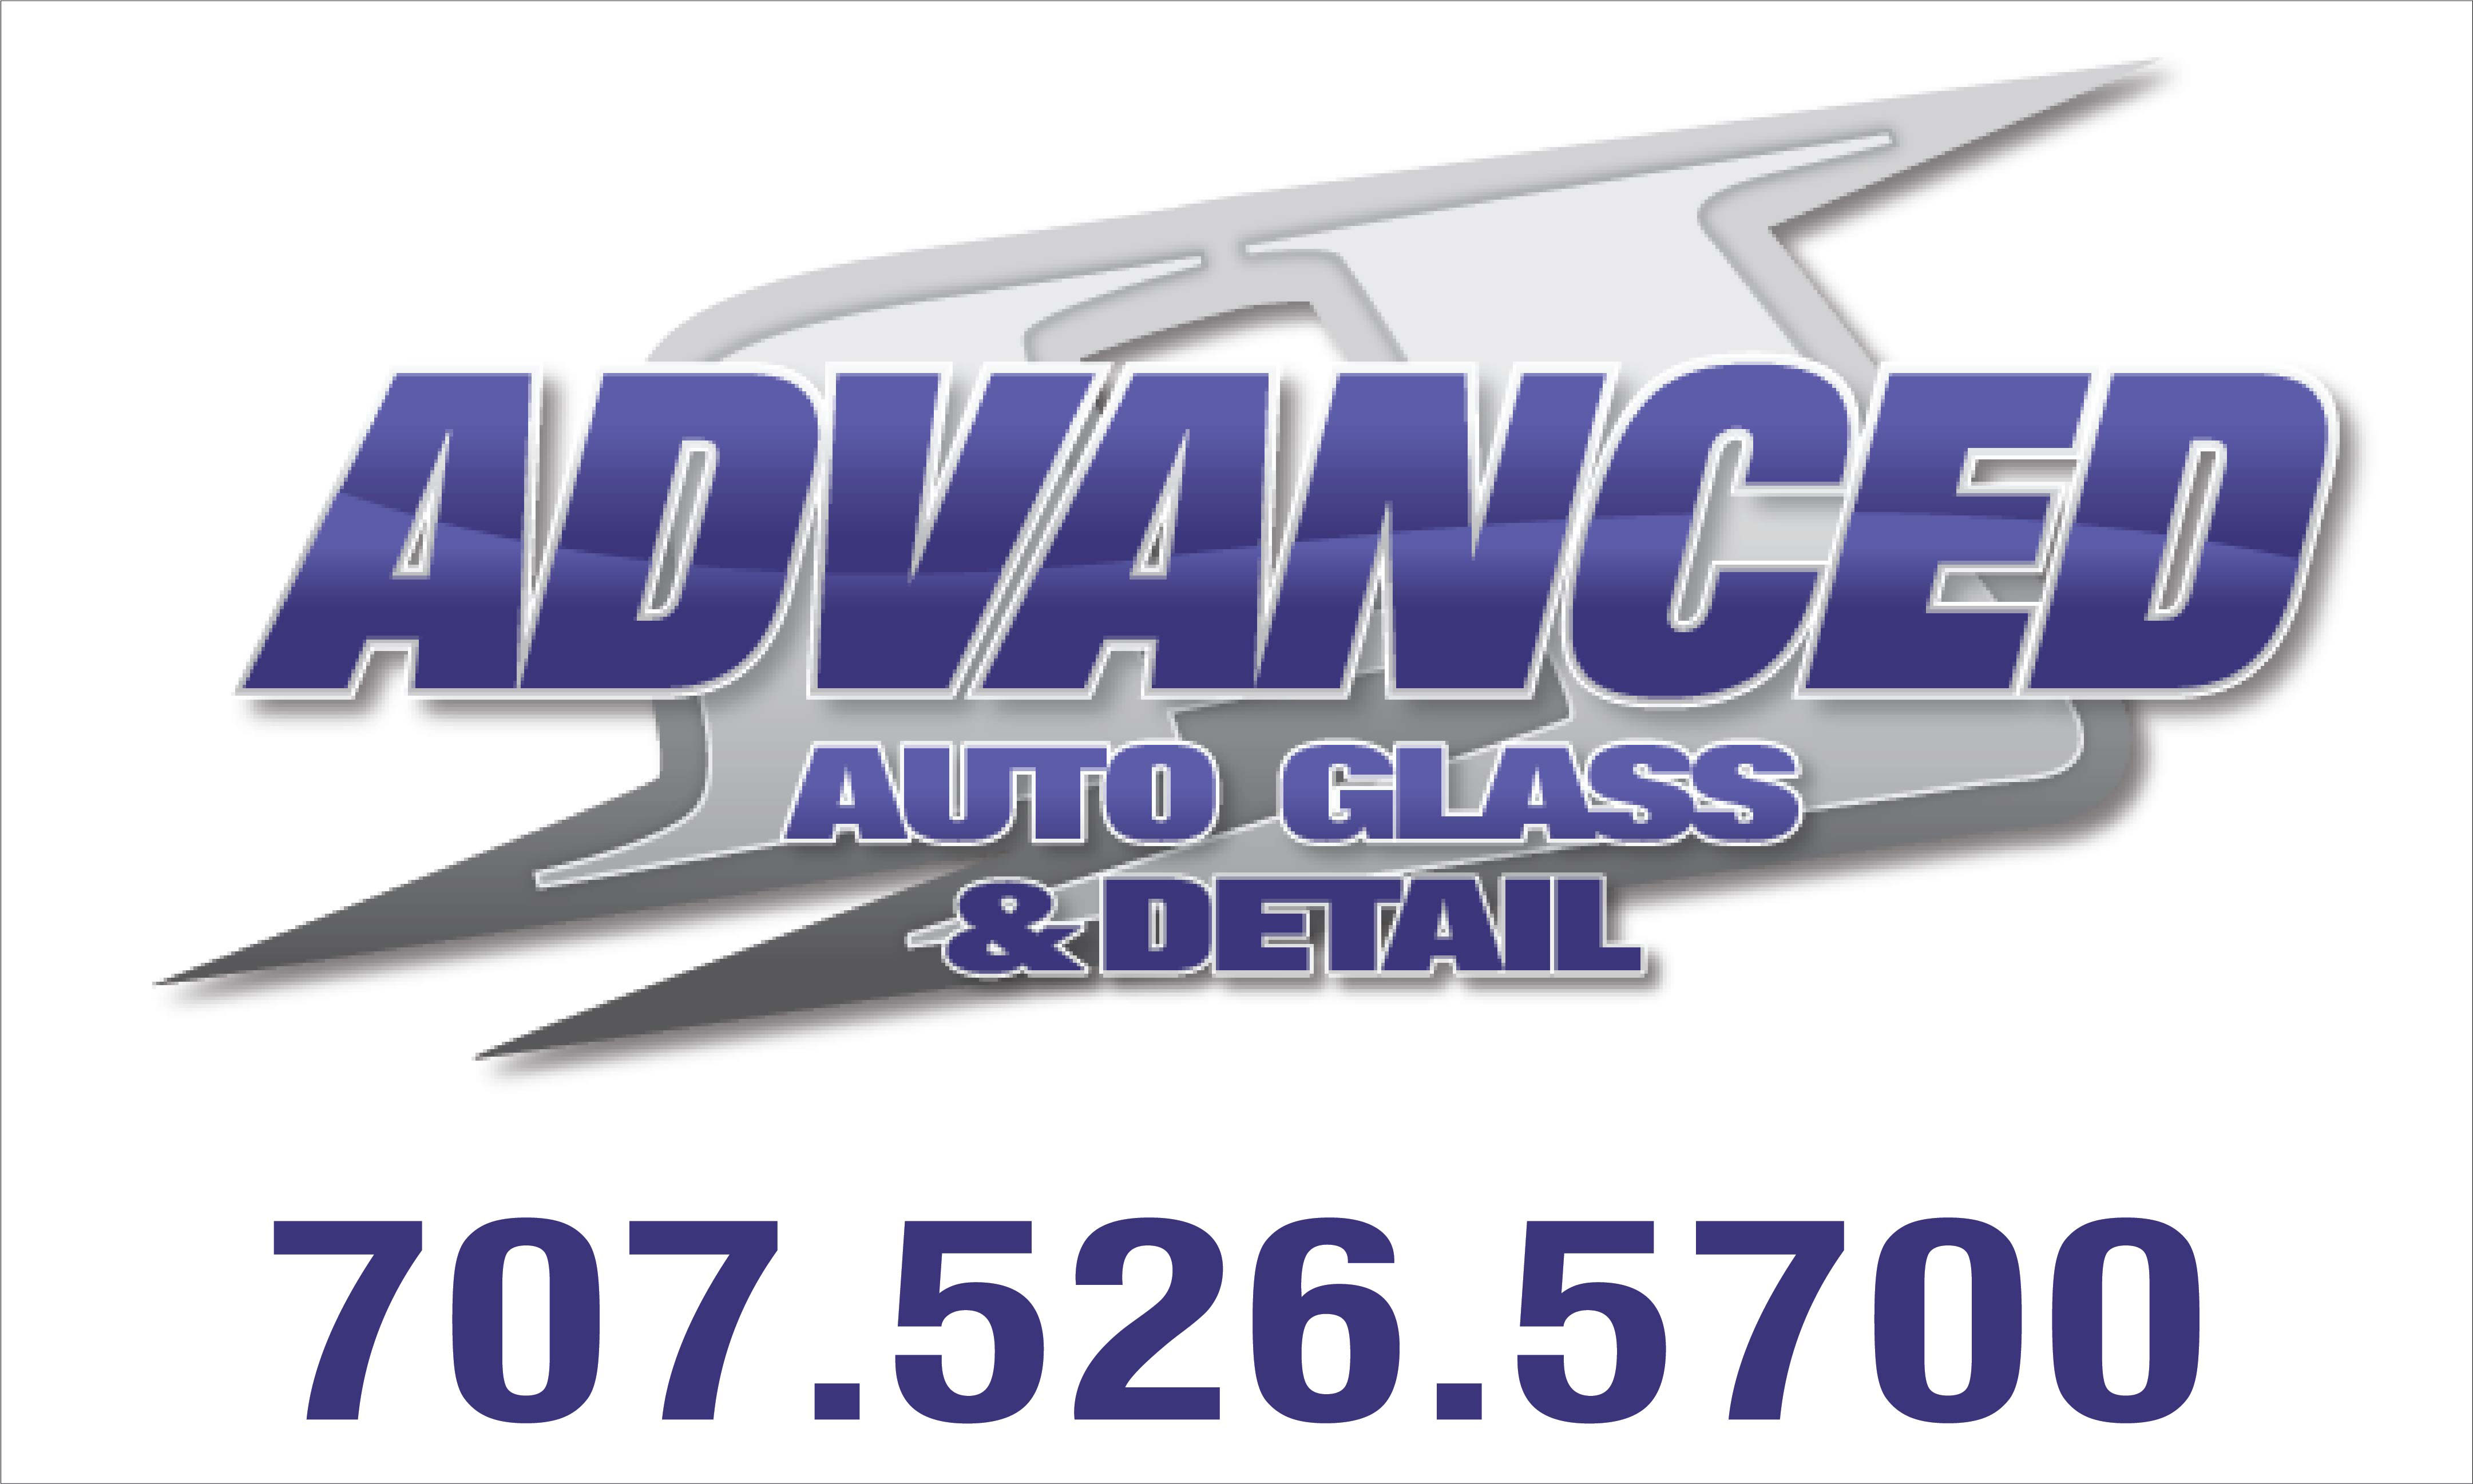 Advanced Auto Glass & Detail